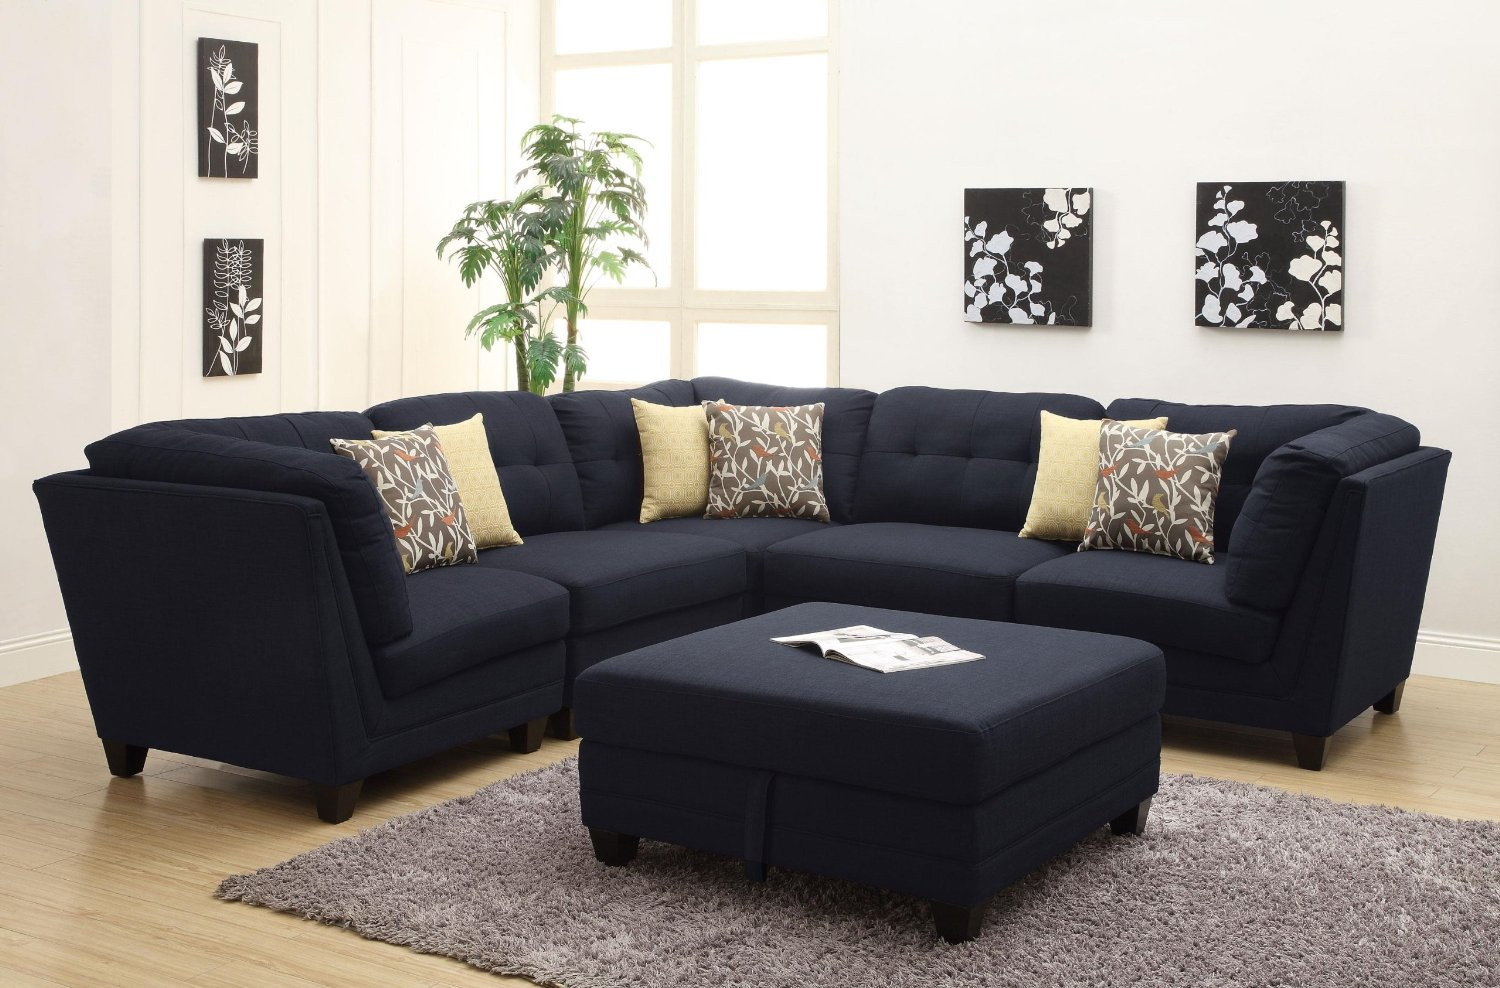 Best ideas about Most Comfortable Sectional Sofa . Save or Pin Most fortable Sectional Sofa Most fortable Sectional Now.